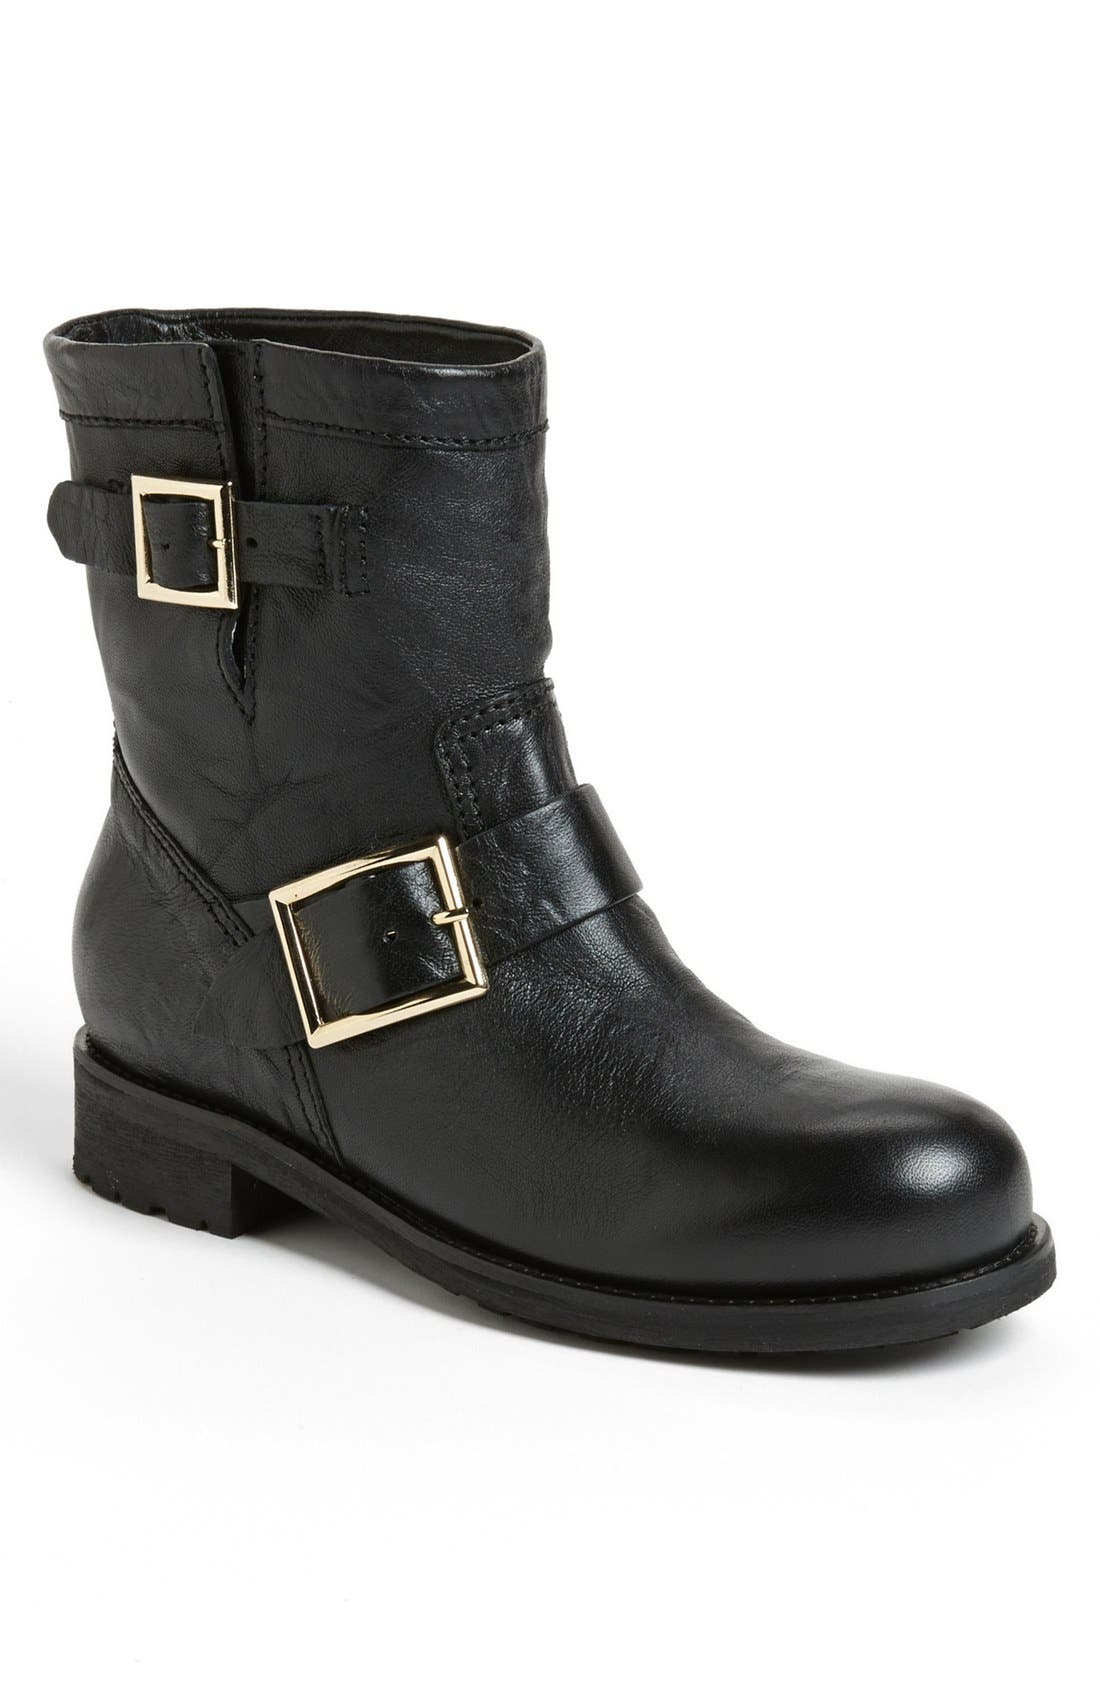 Main Image - Jimmy Choo 'Youth' Short Biker Boot